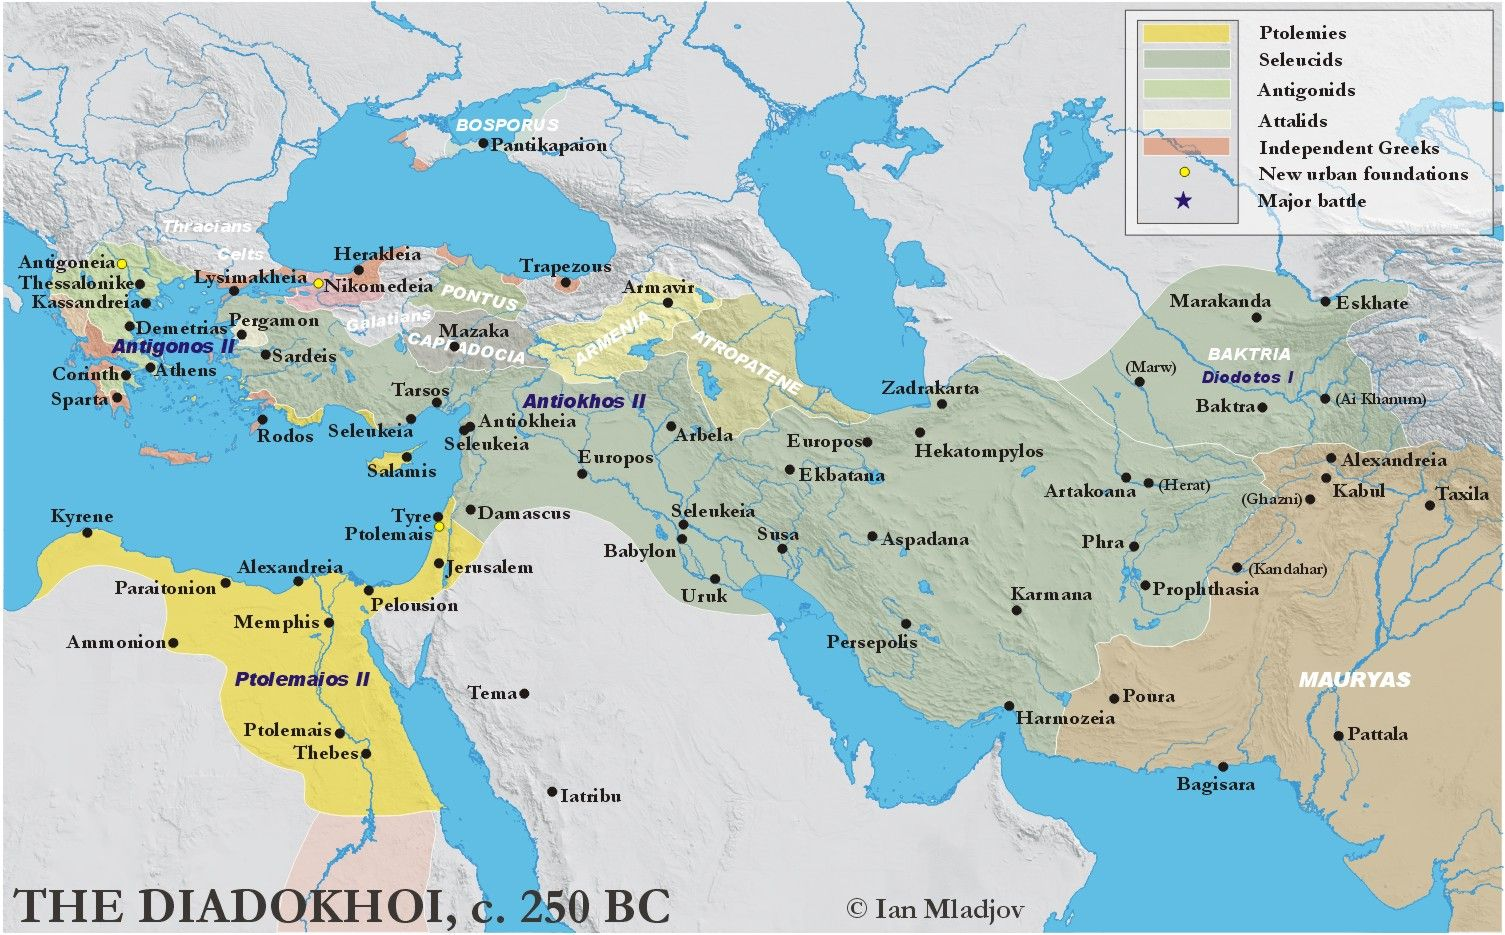 Diadokhoi map original game of thrones map of the hellenistic diadokhoi map original game of thrones map of the hellenistic world 3rd century bce gumiabroncs Image collections